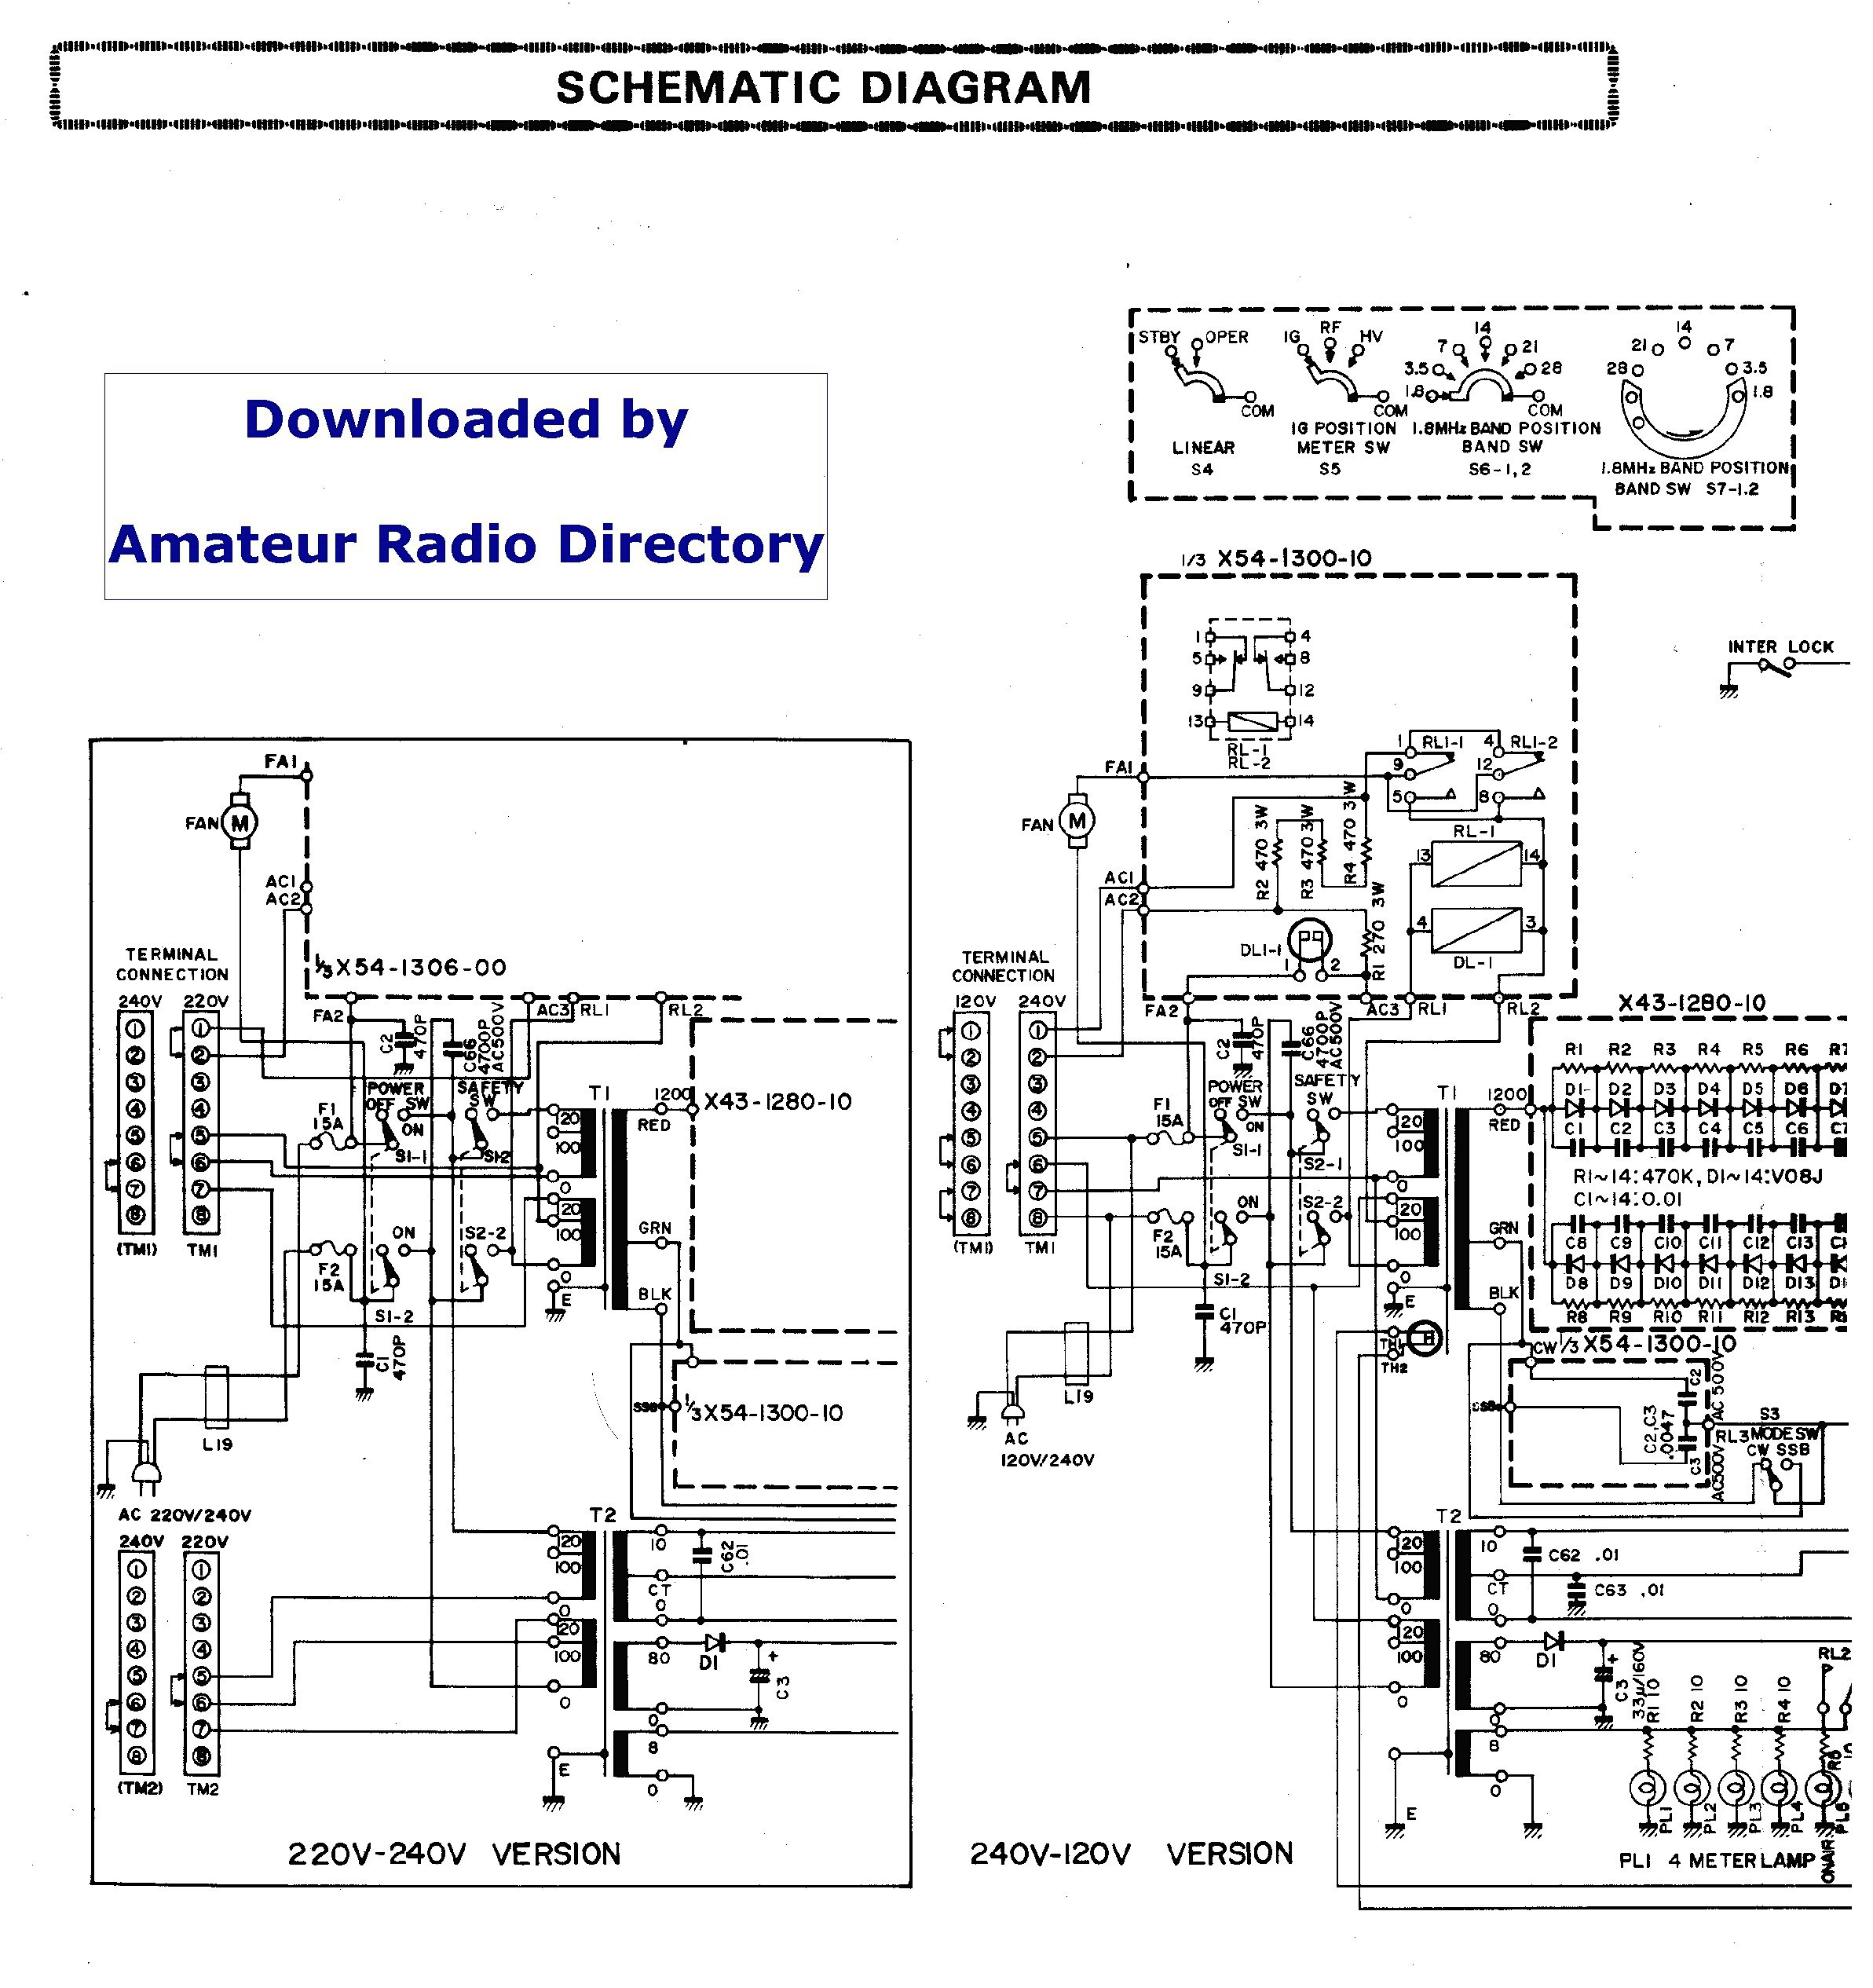 Omron Wiring Diagram Safety Relay Gallery Suzuki Gs550 E Usa Cam Chain Schematic Partsfiche Wire Rh